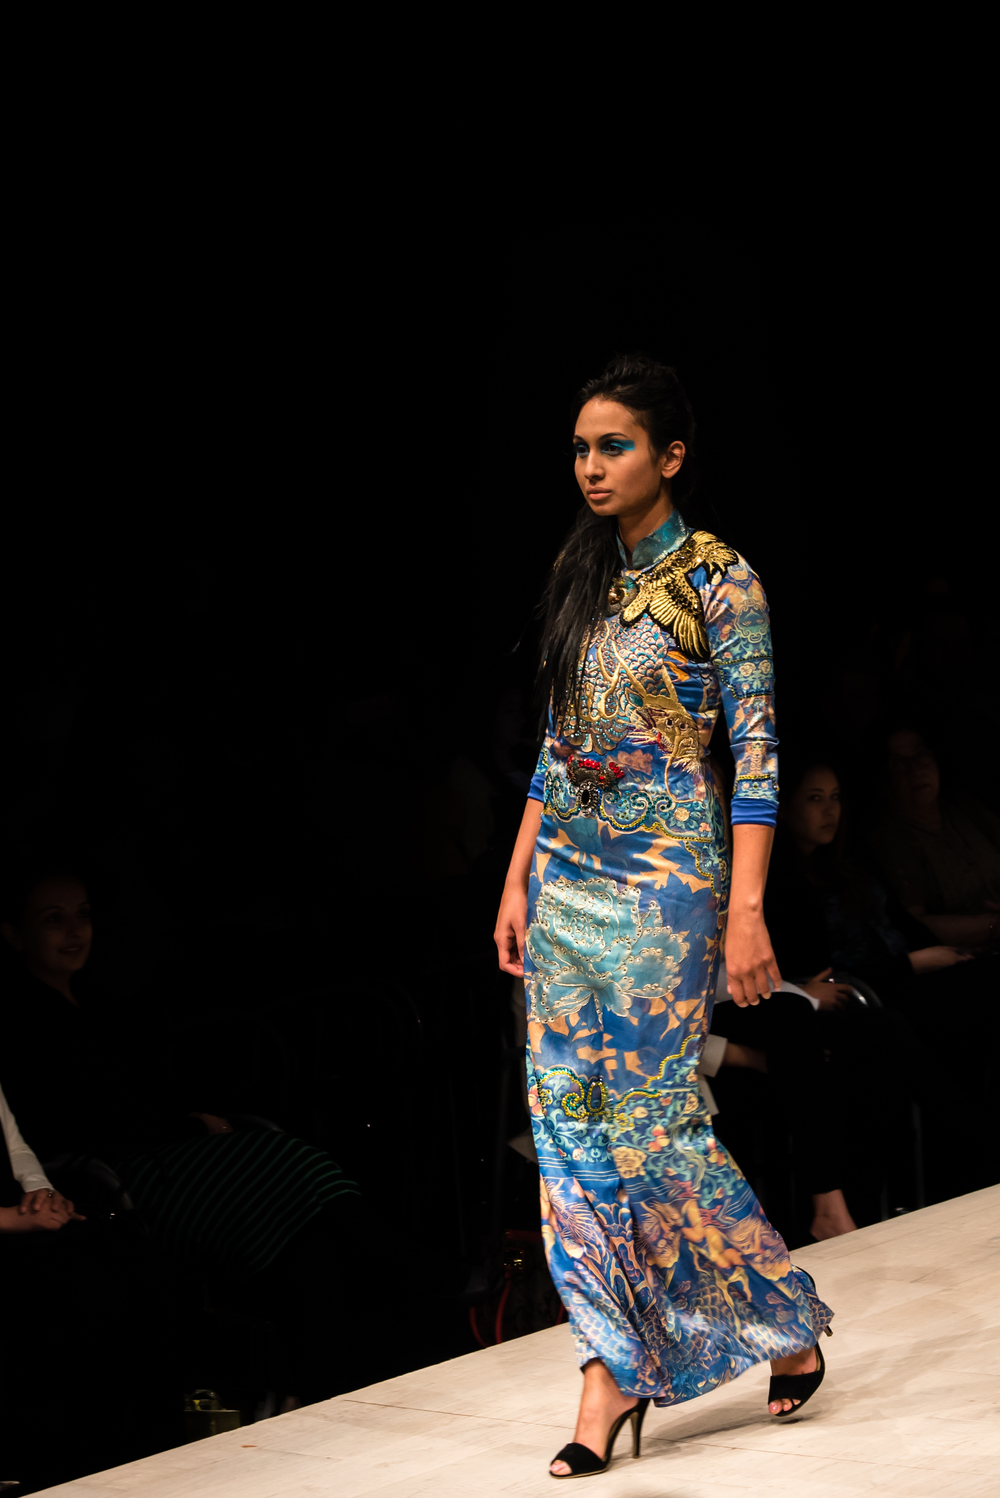 Sher Khan Niazi-WCFW-Asian-3567.jpg